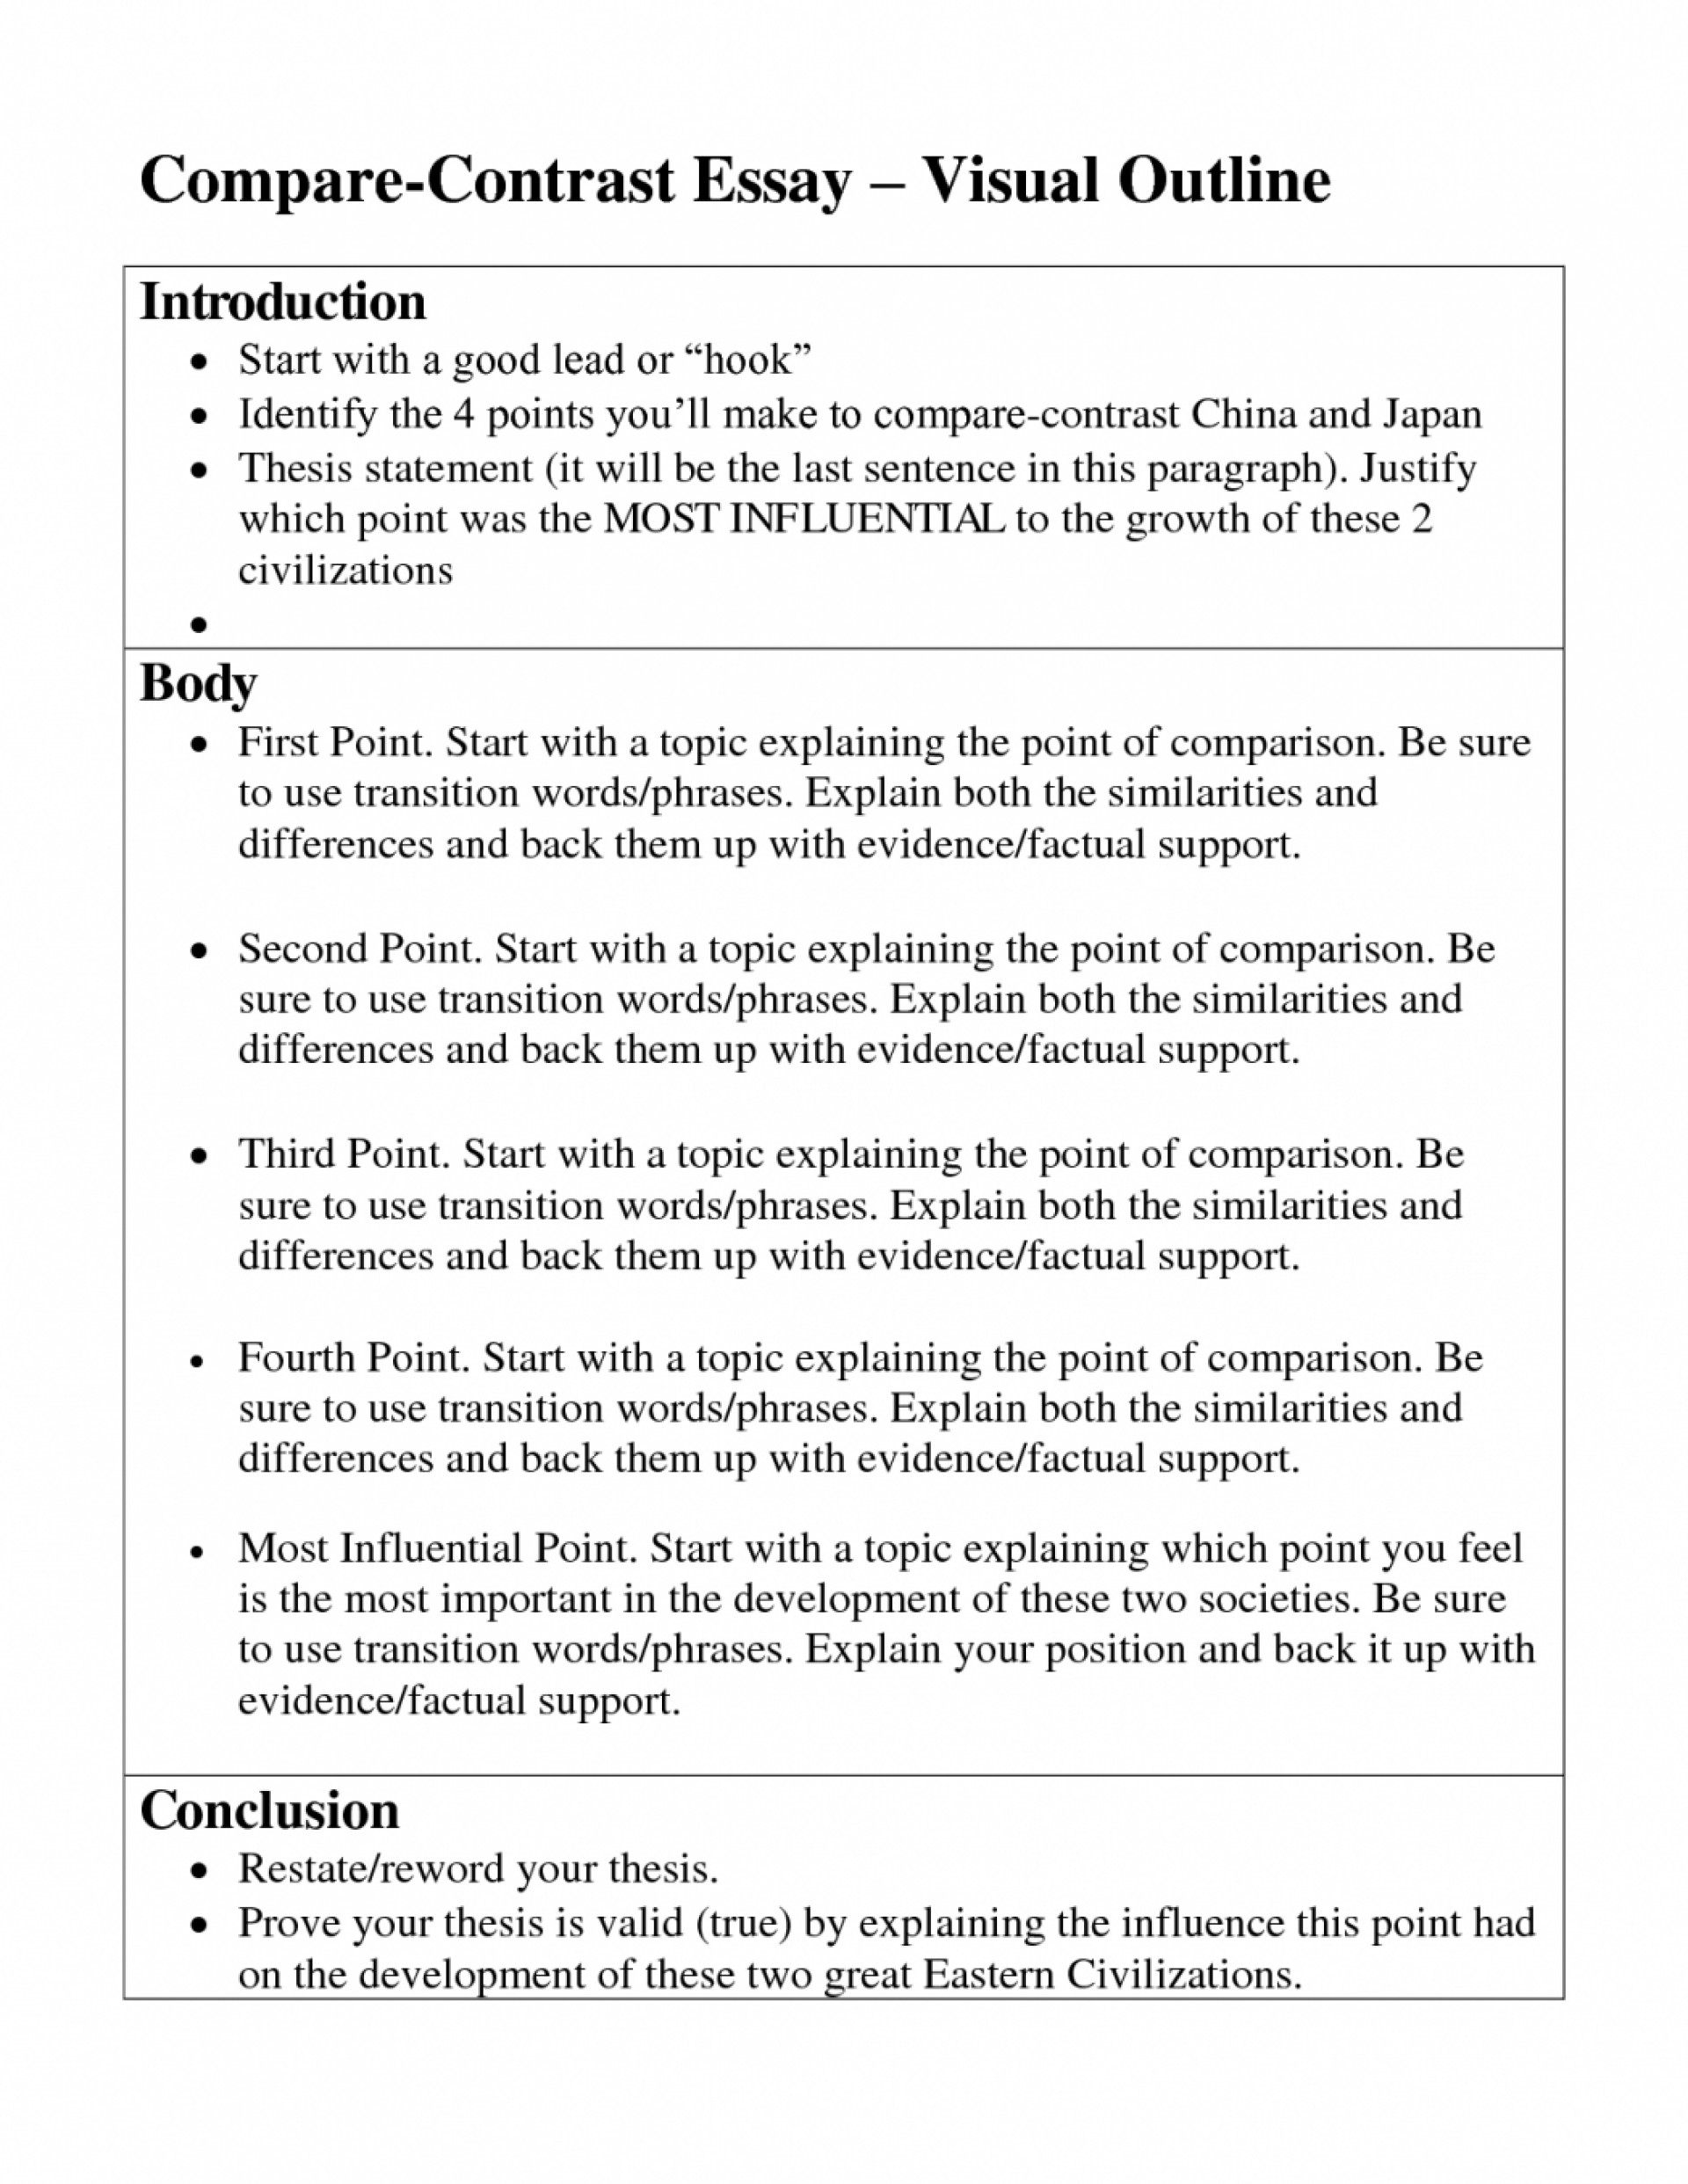 008 Make Money Writing Essays How To Write Essay Outline Template Student For 1048x1356 Best Uni College Scholarship 1920